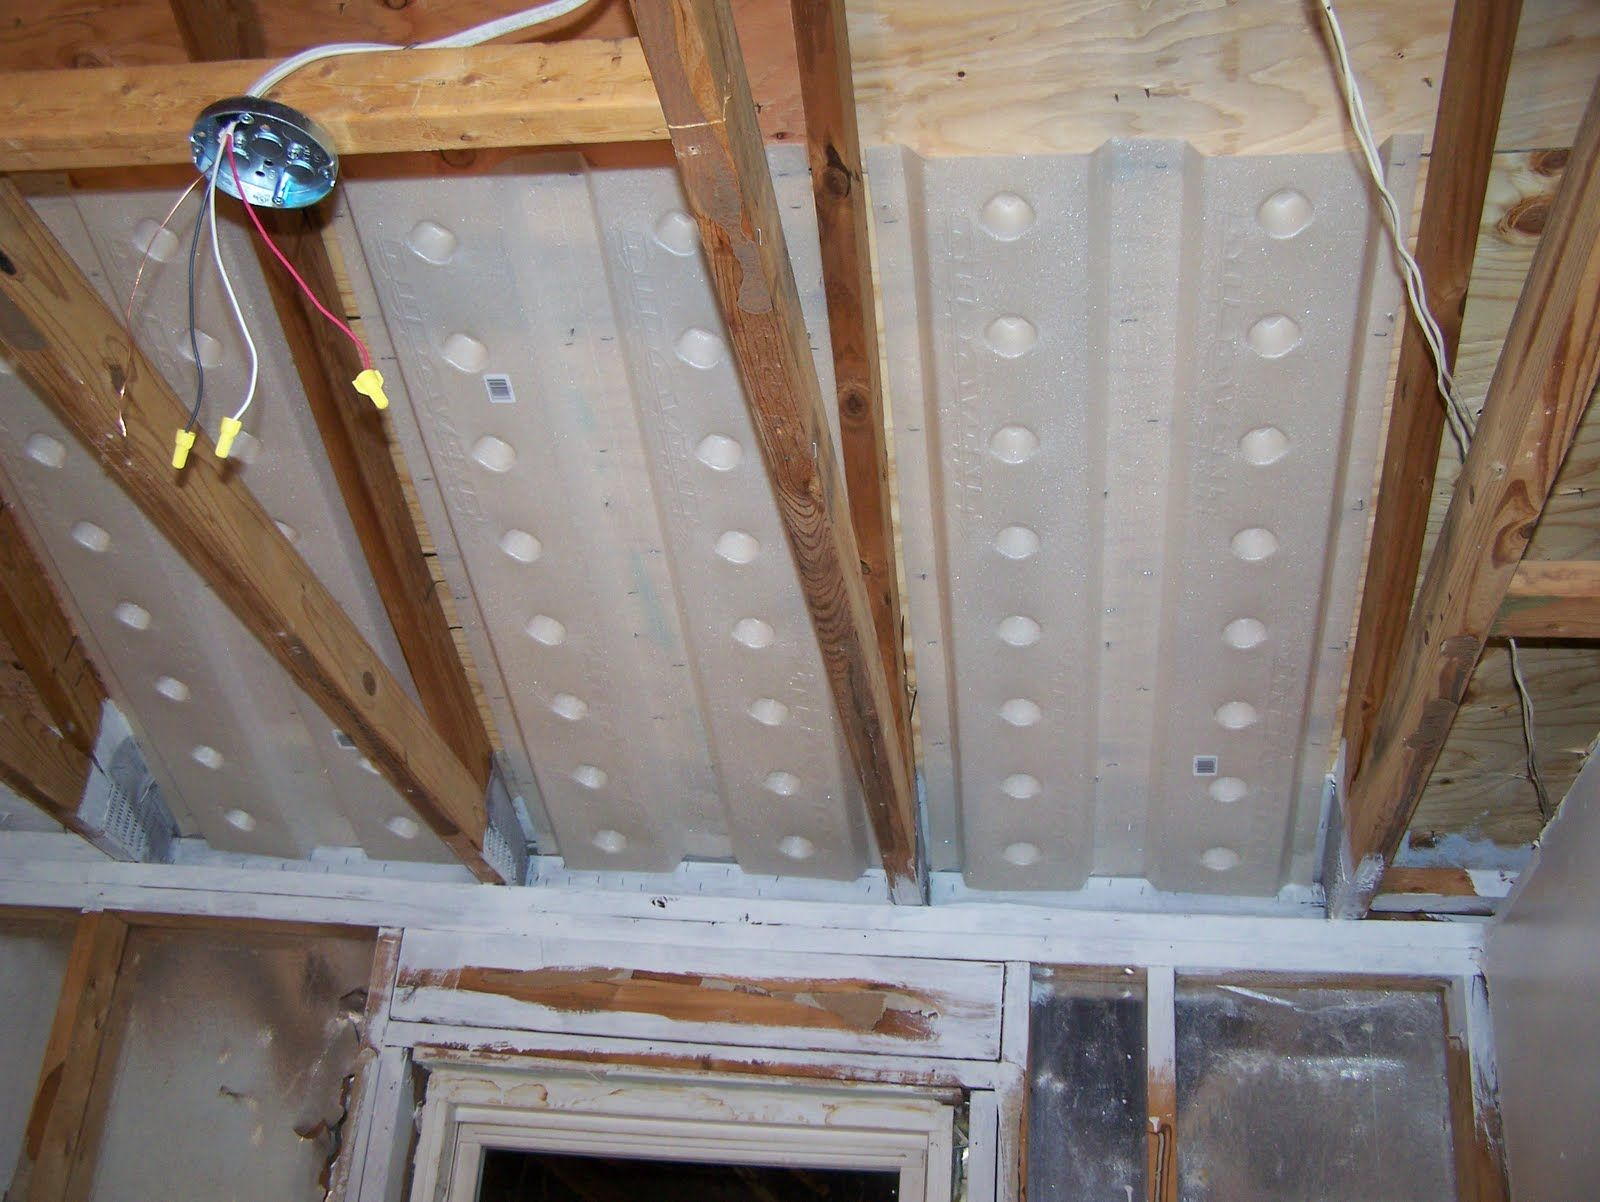 Insulate Vaulted Ceiling The Garage Journal Board Garage Insulation Garage Design Garage Workshop